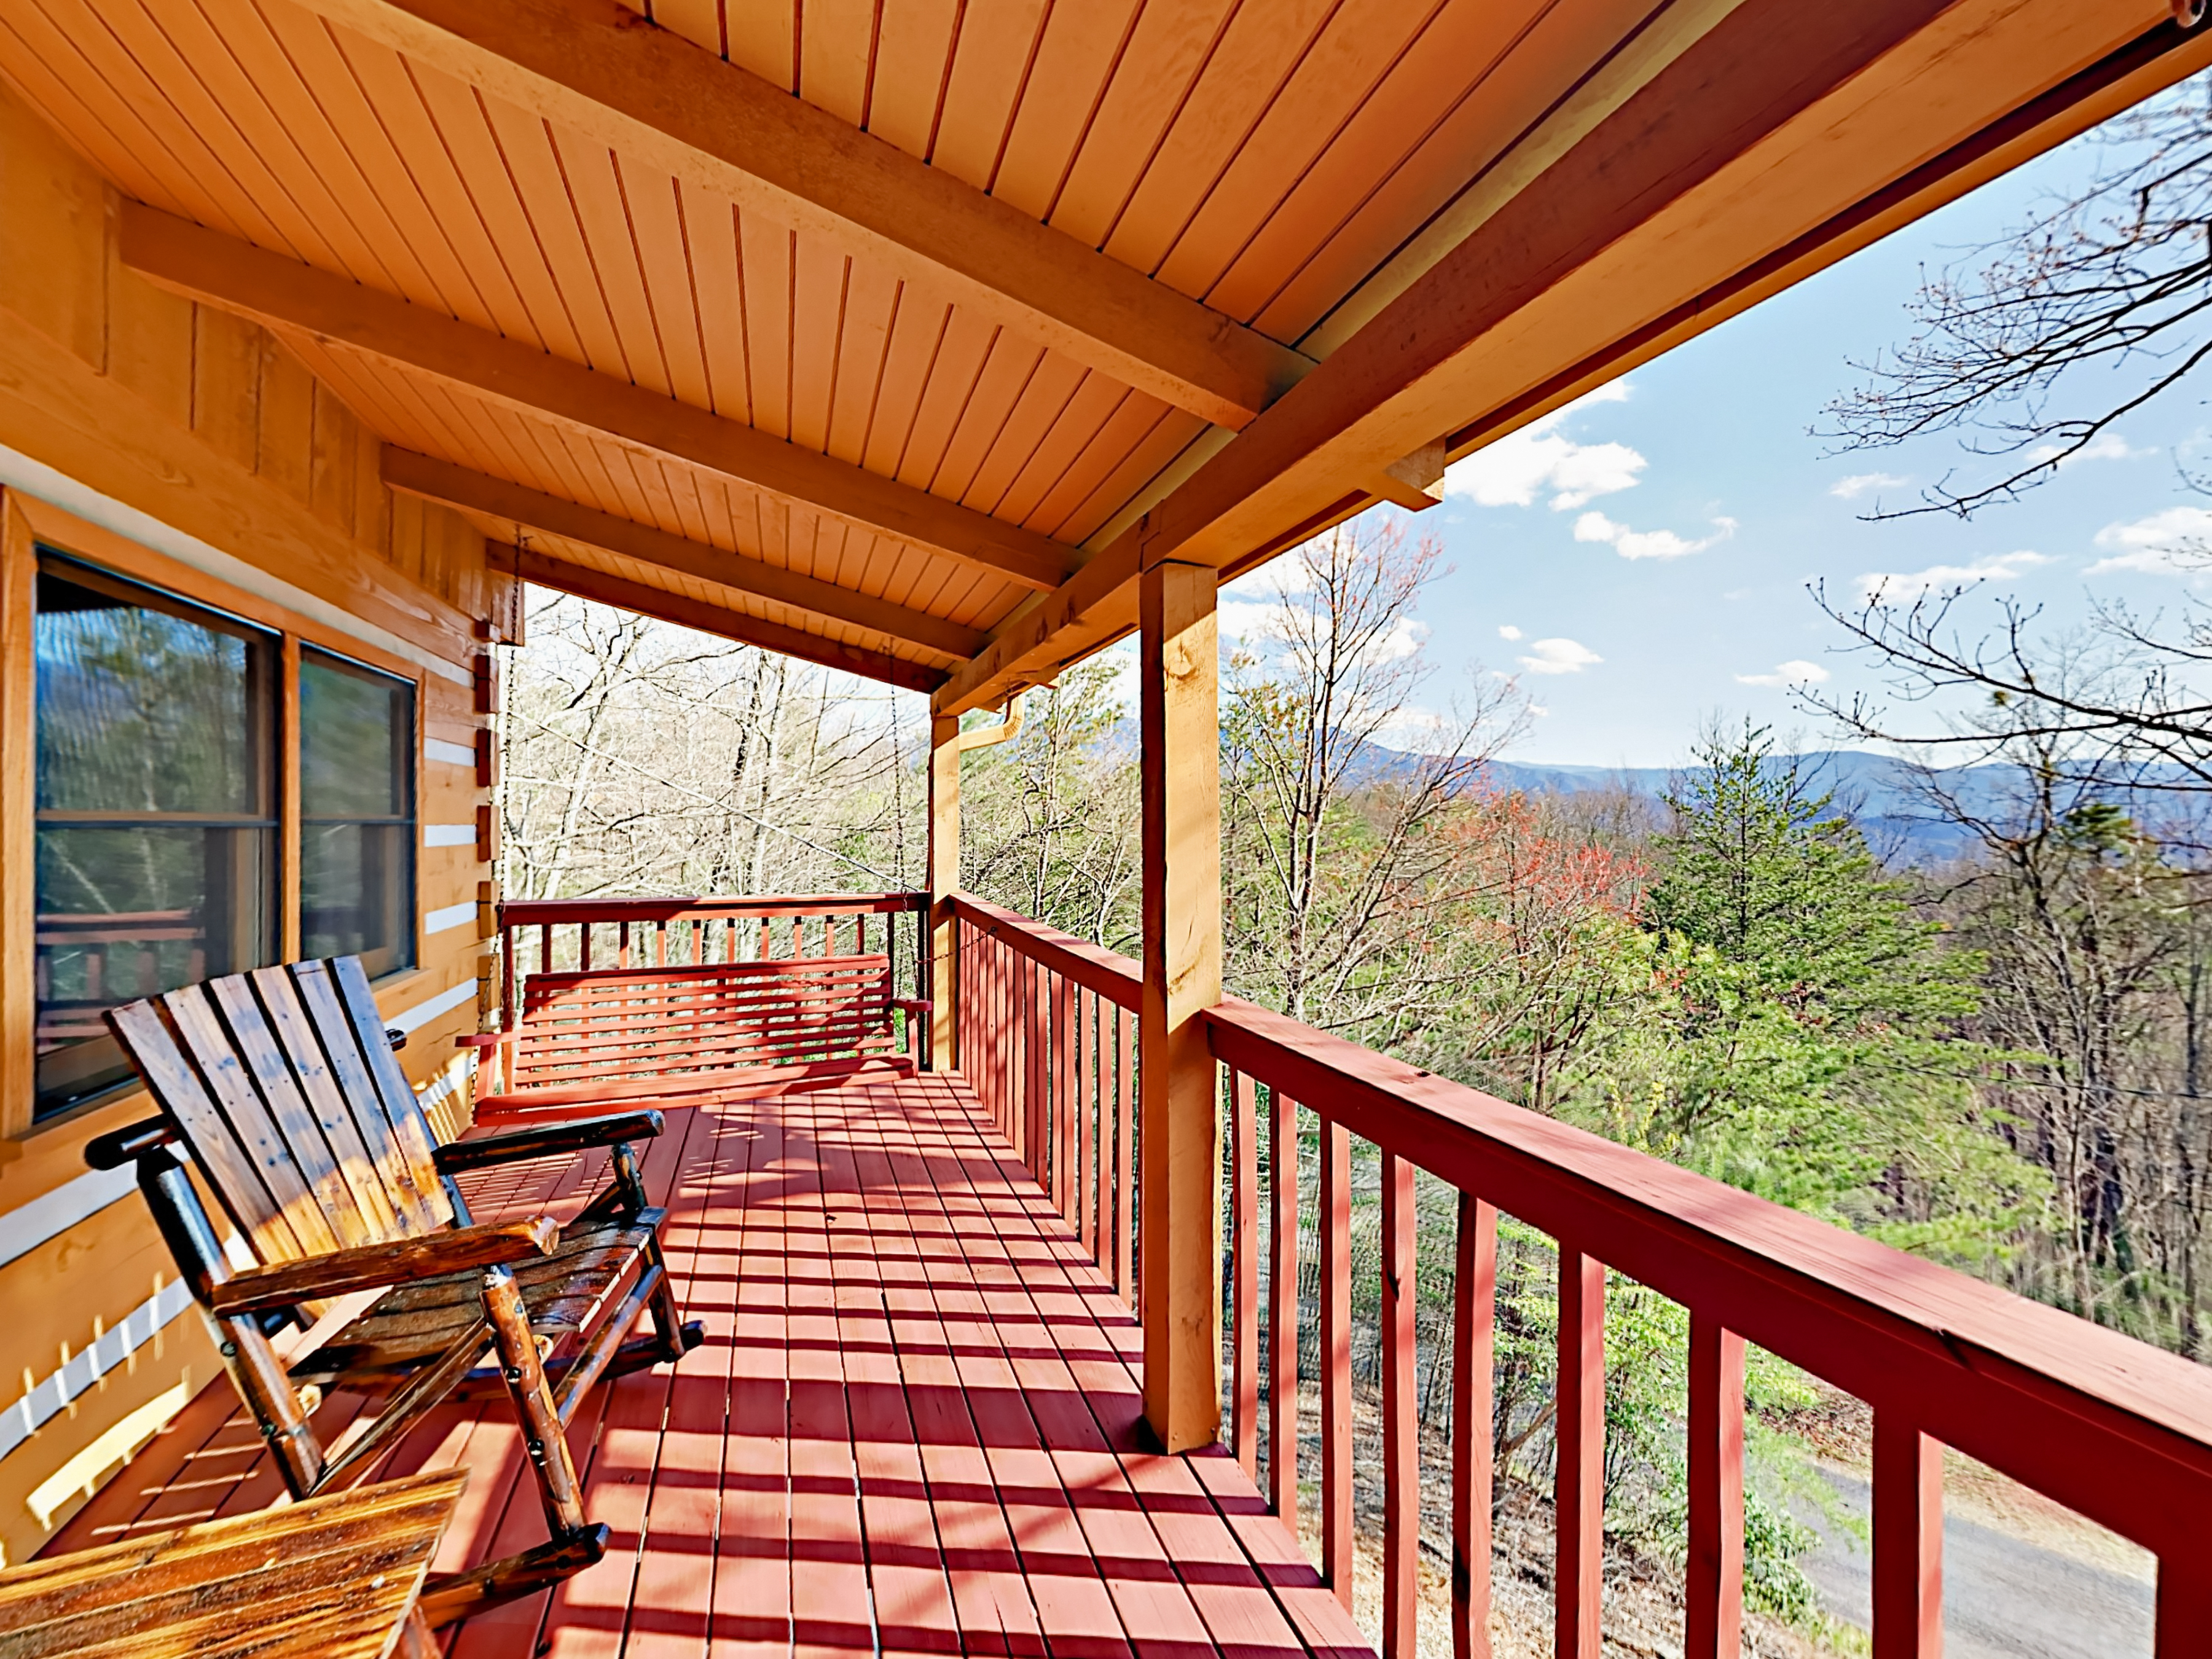 Gatlinburg TN Vacation Rental This lovely getaway